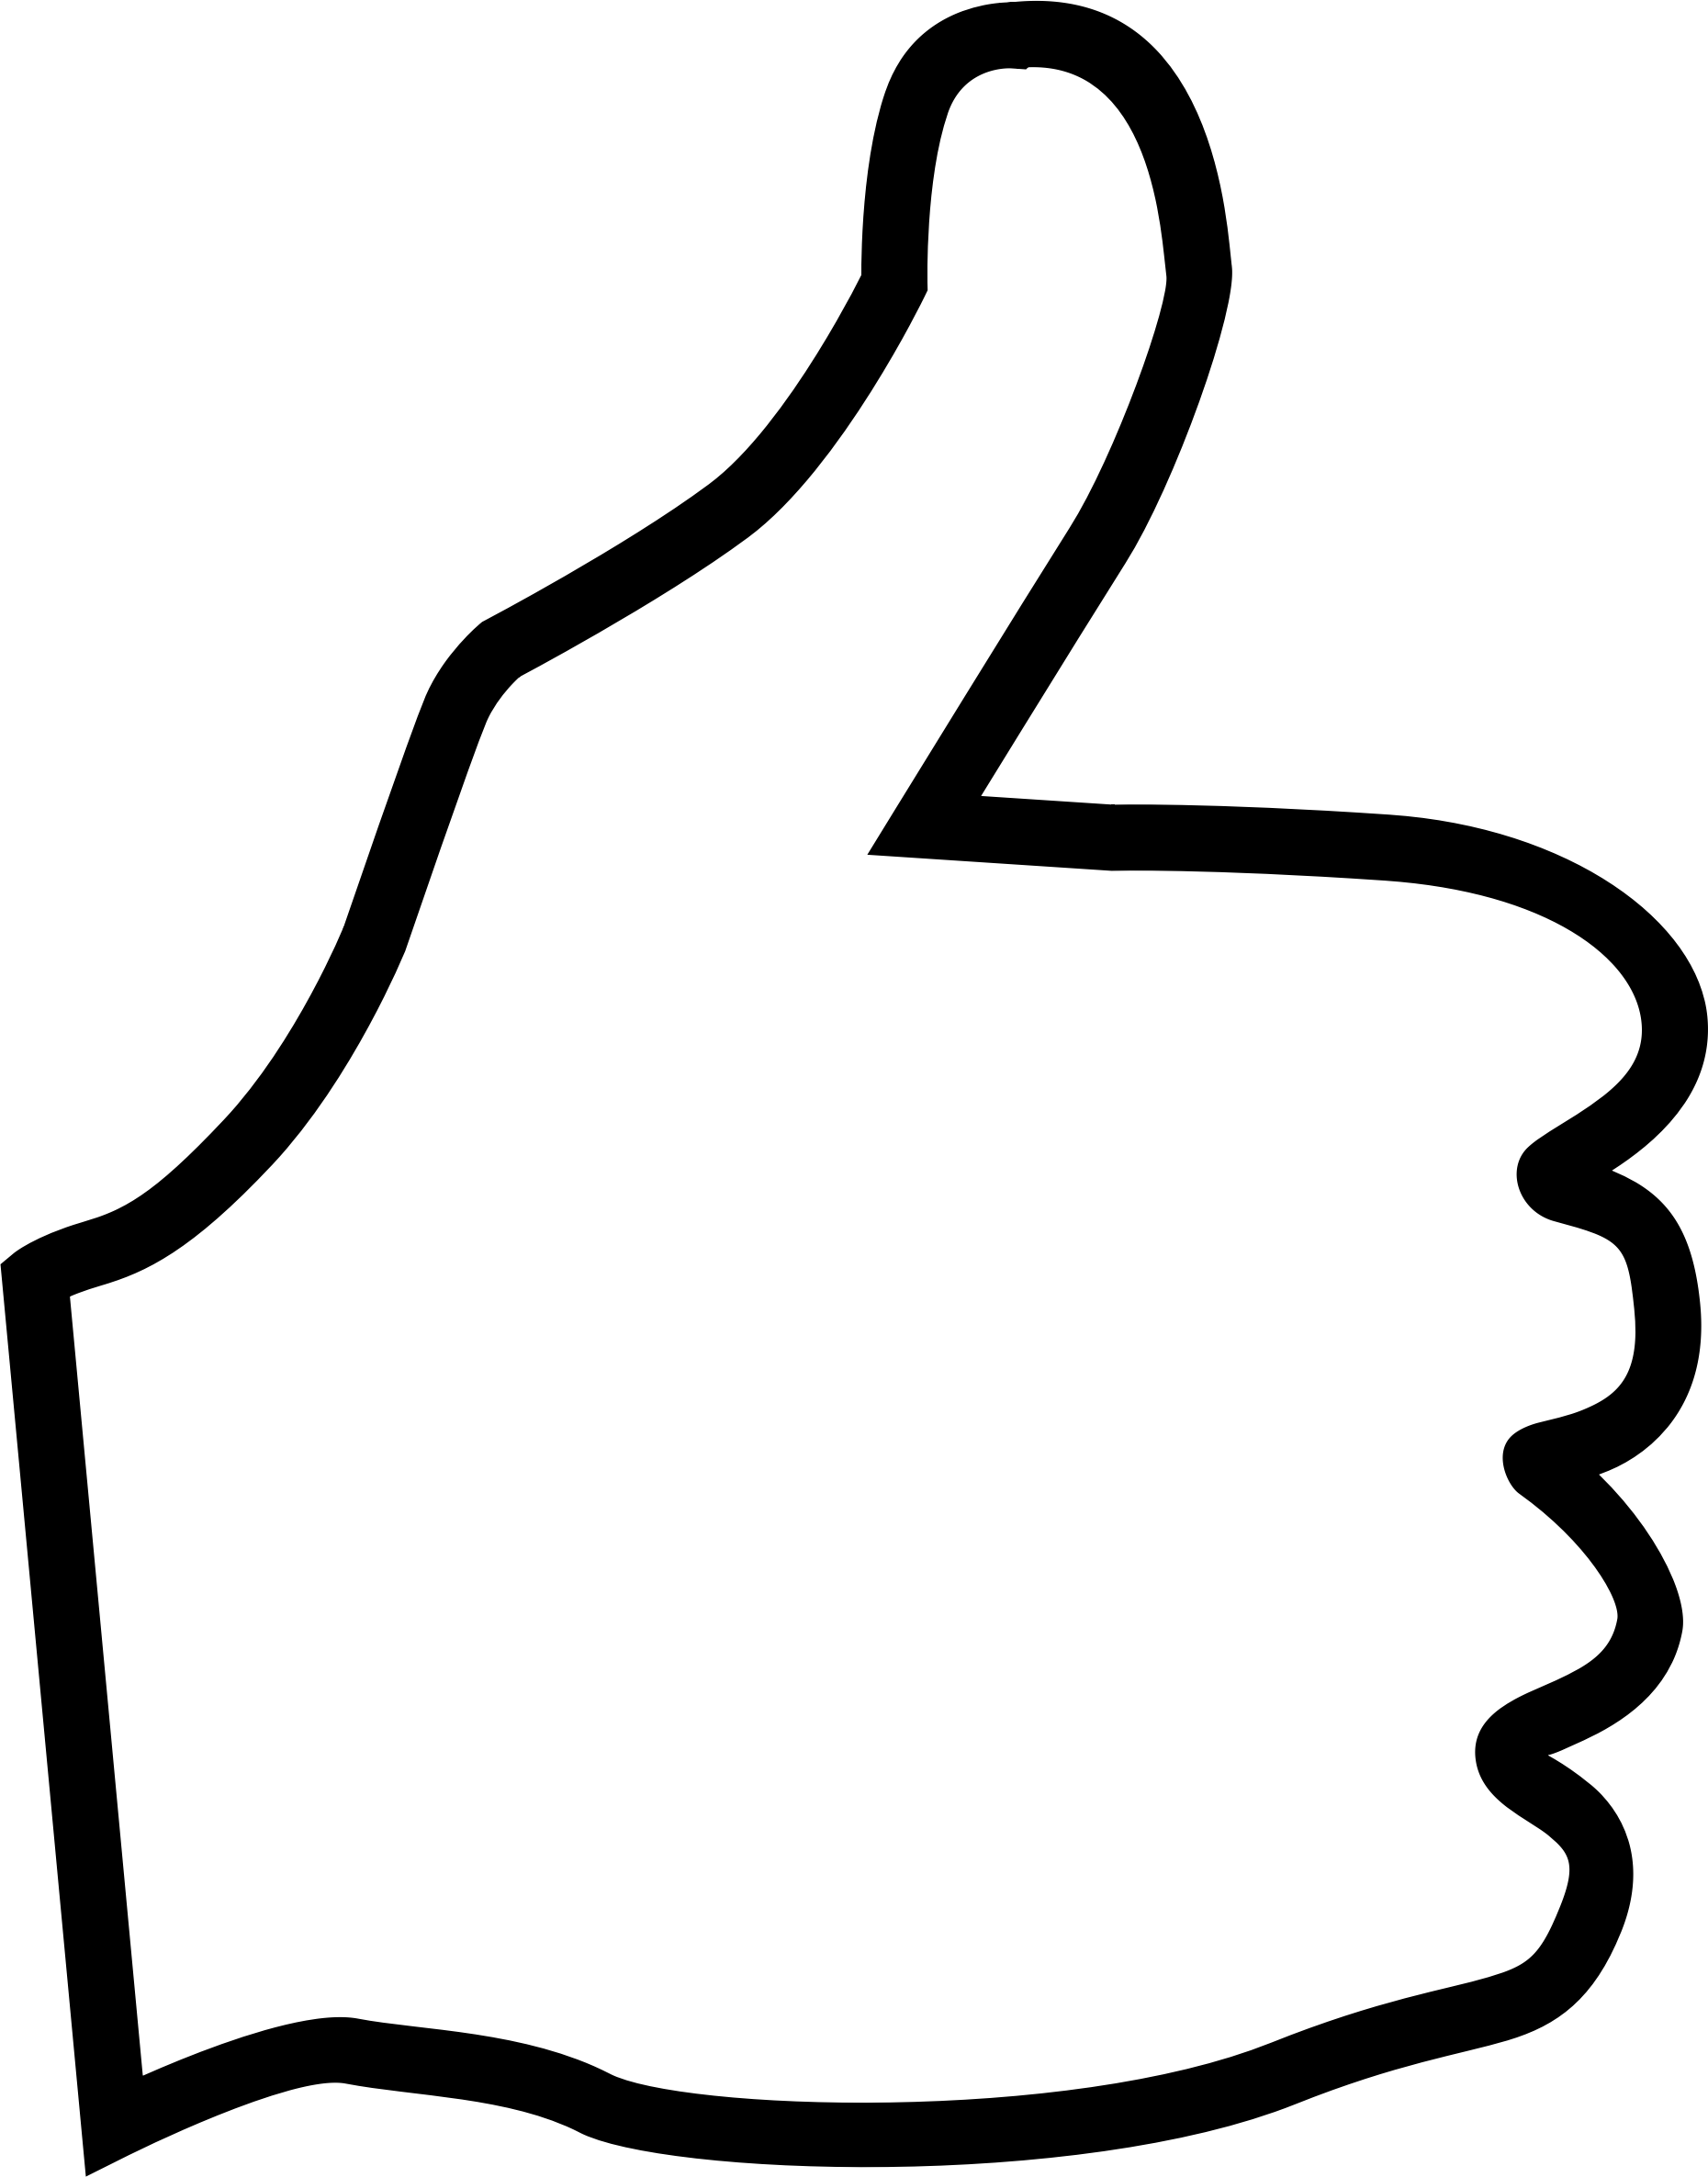 Thumb up clipart image free library Free Thumbs Up, Download Free Clip Art, Free Clip Art on ... image free library